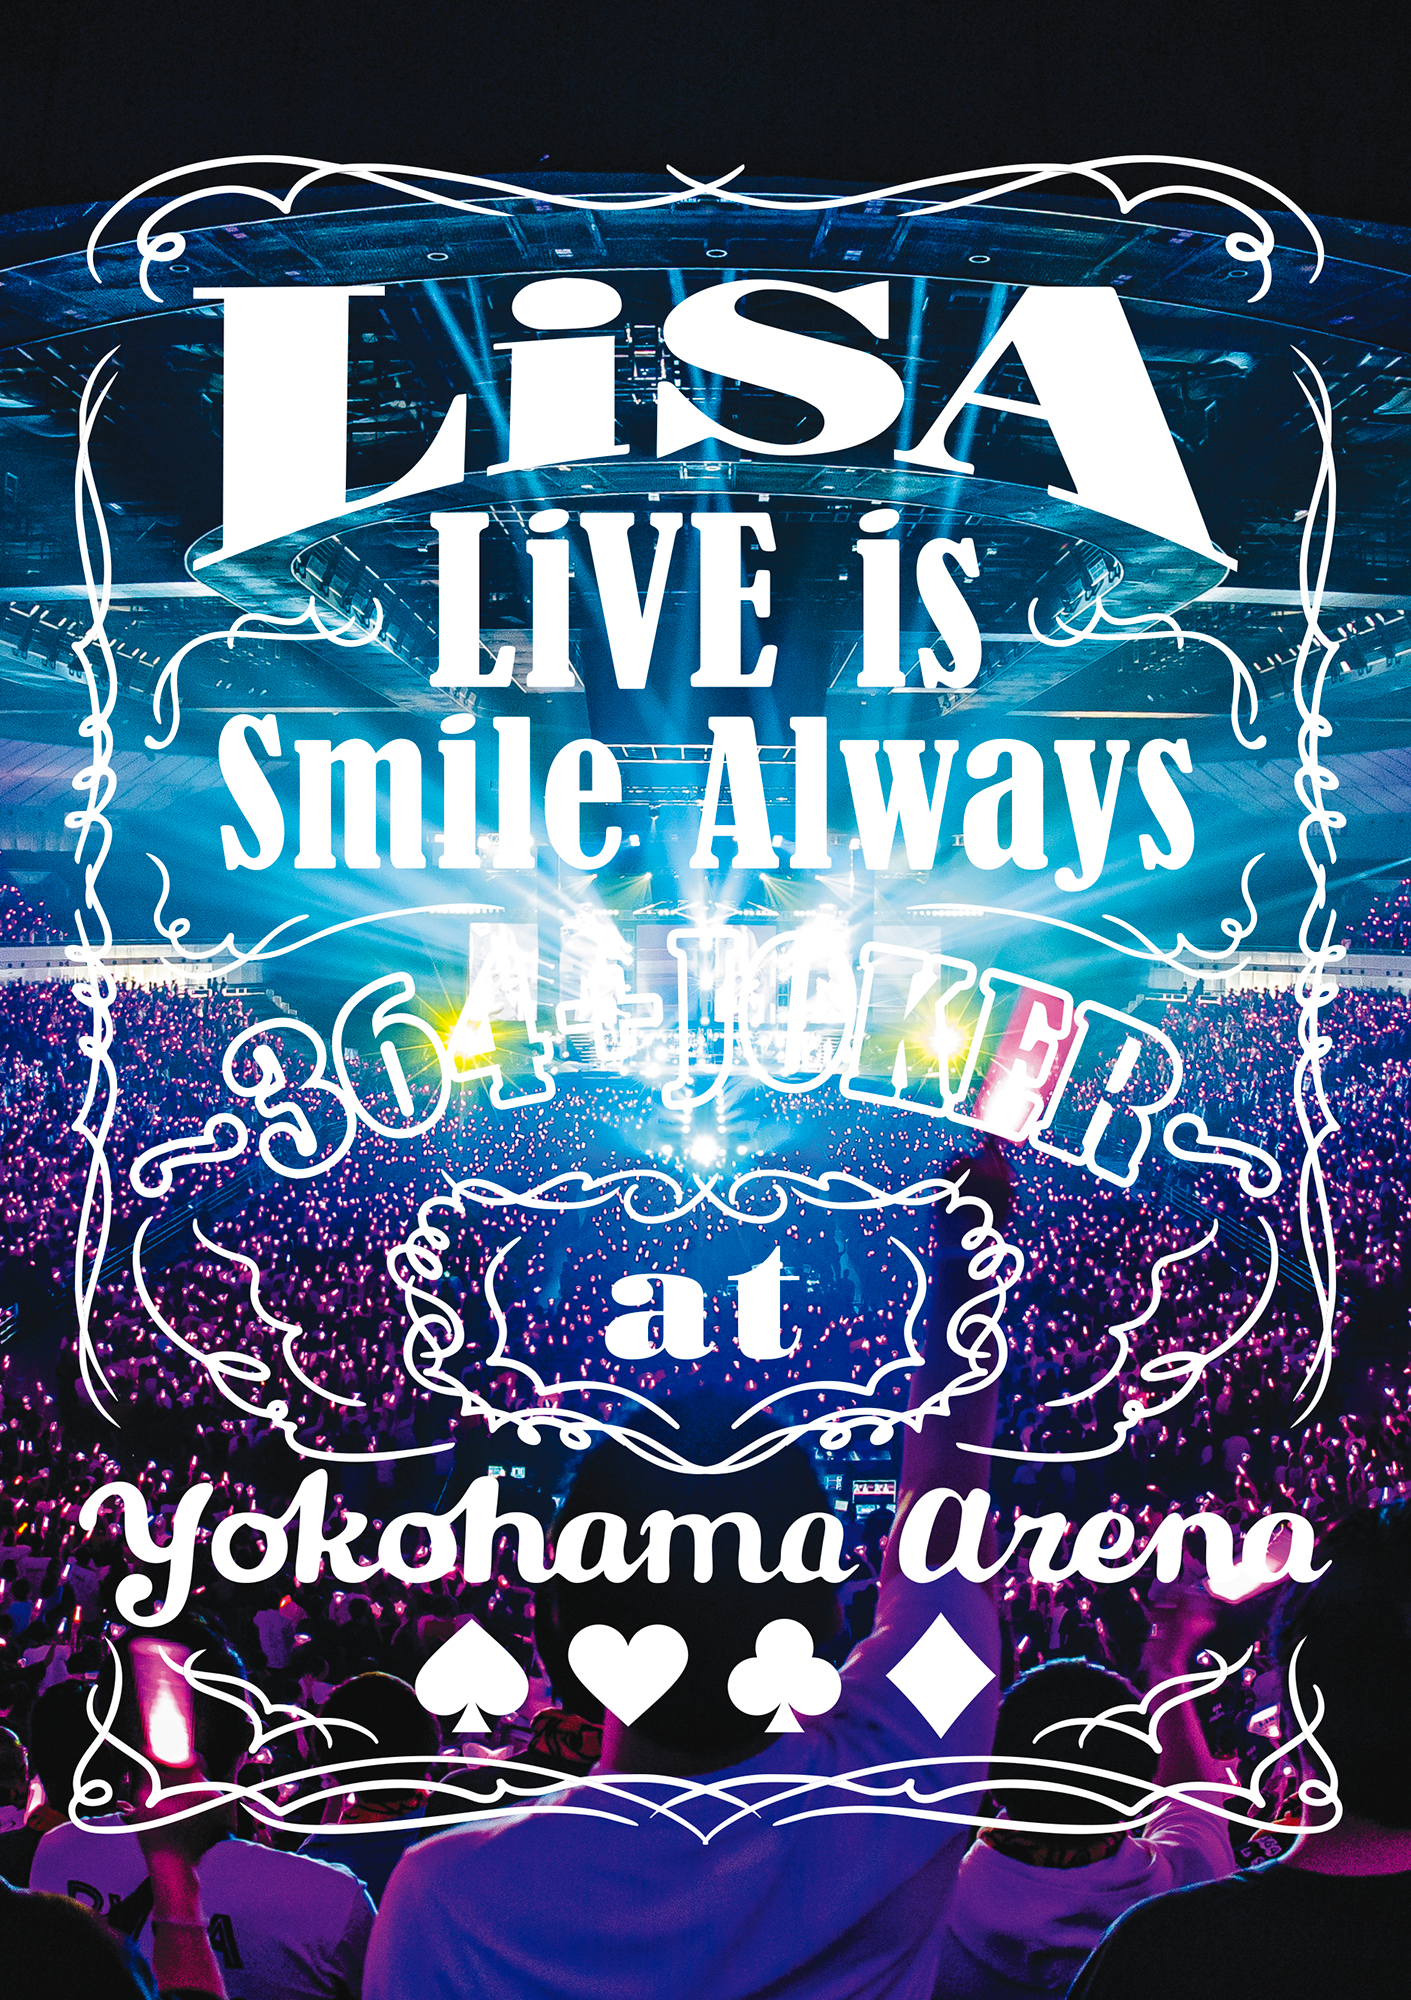 「LiVE is Smile Always~364+JOKER~ at YOKOHAMA ARENA」初回仕様限定盤